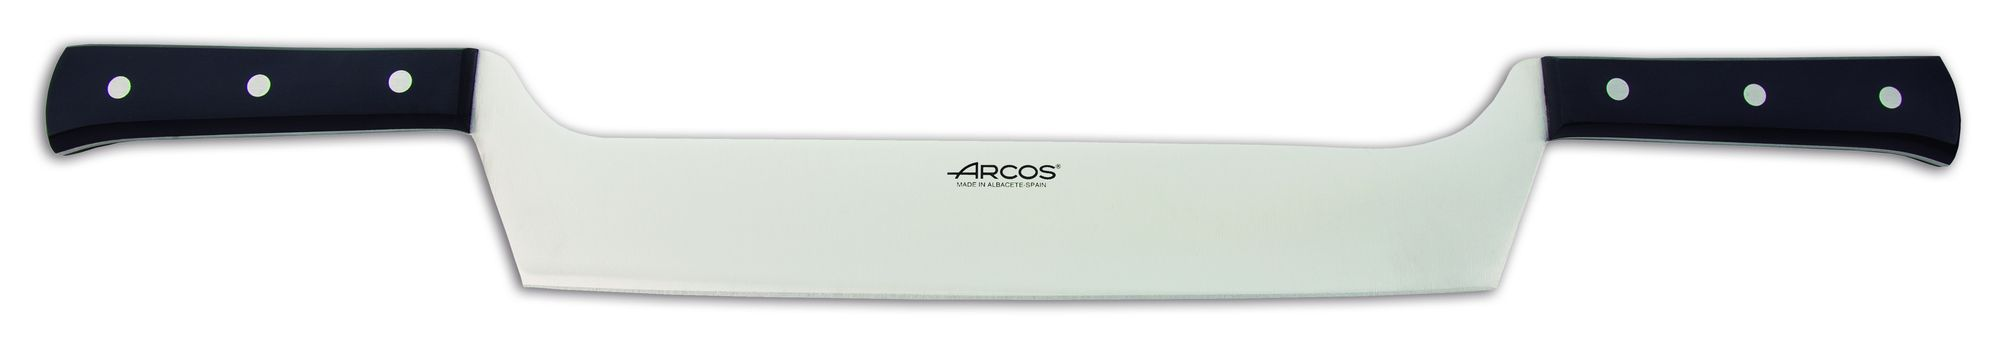 Cheese Knife Arcos ref.: 792400